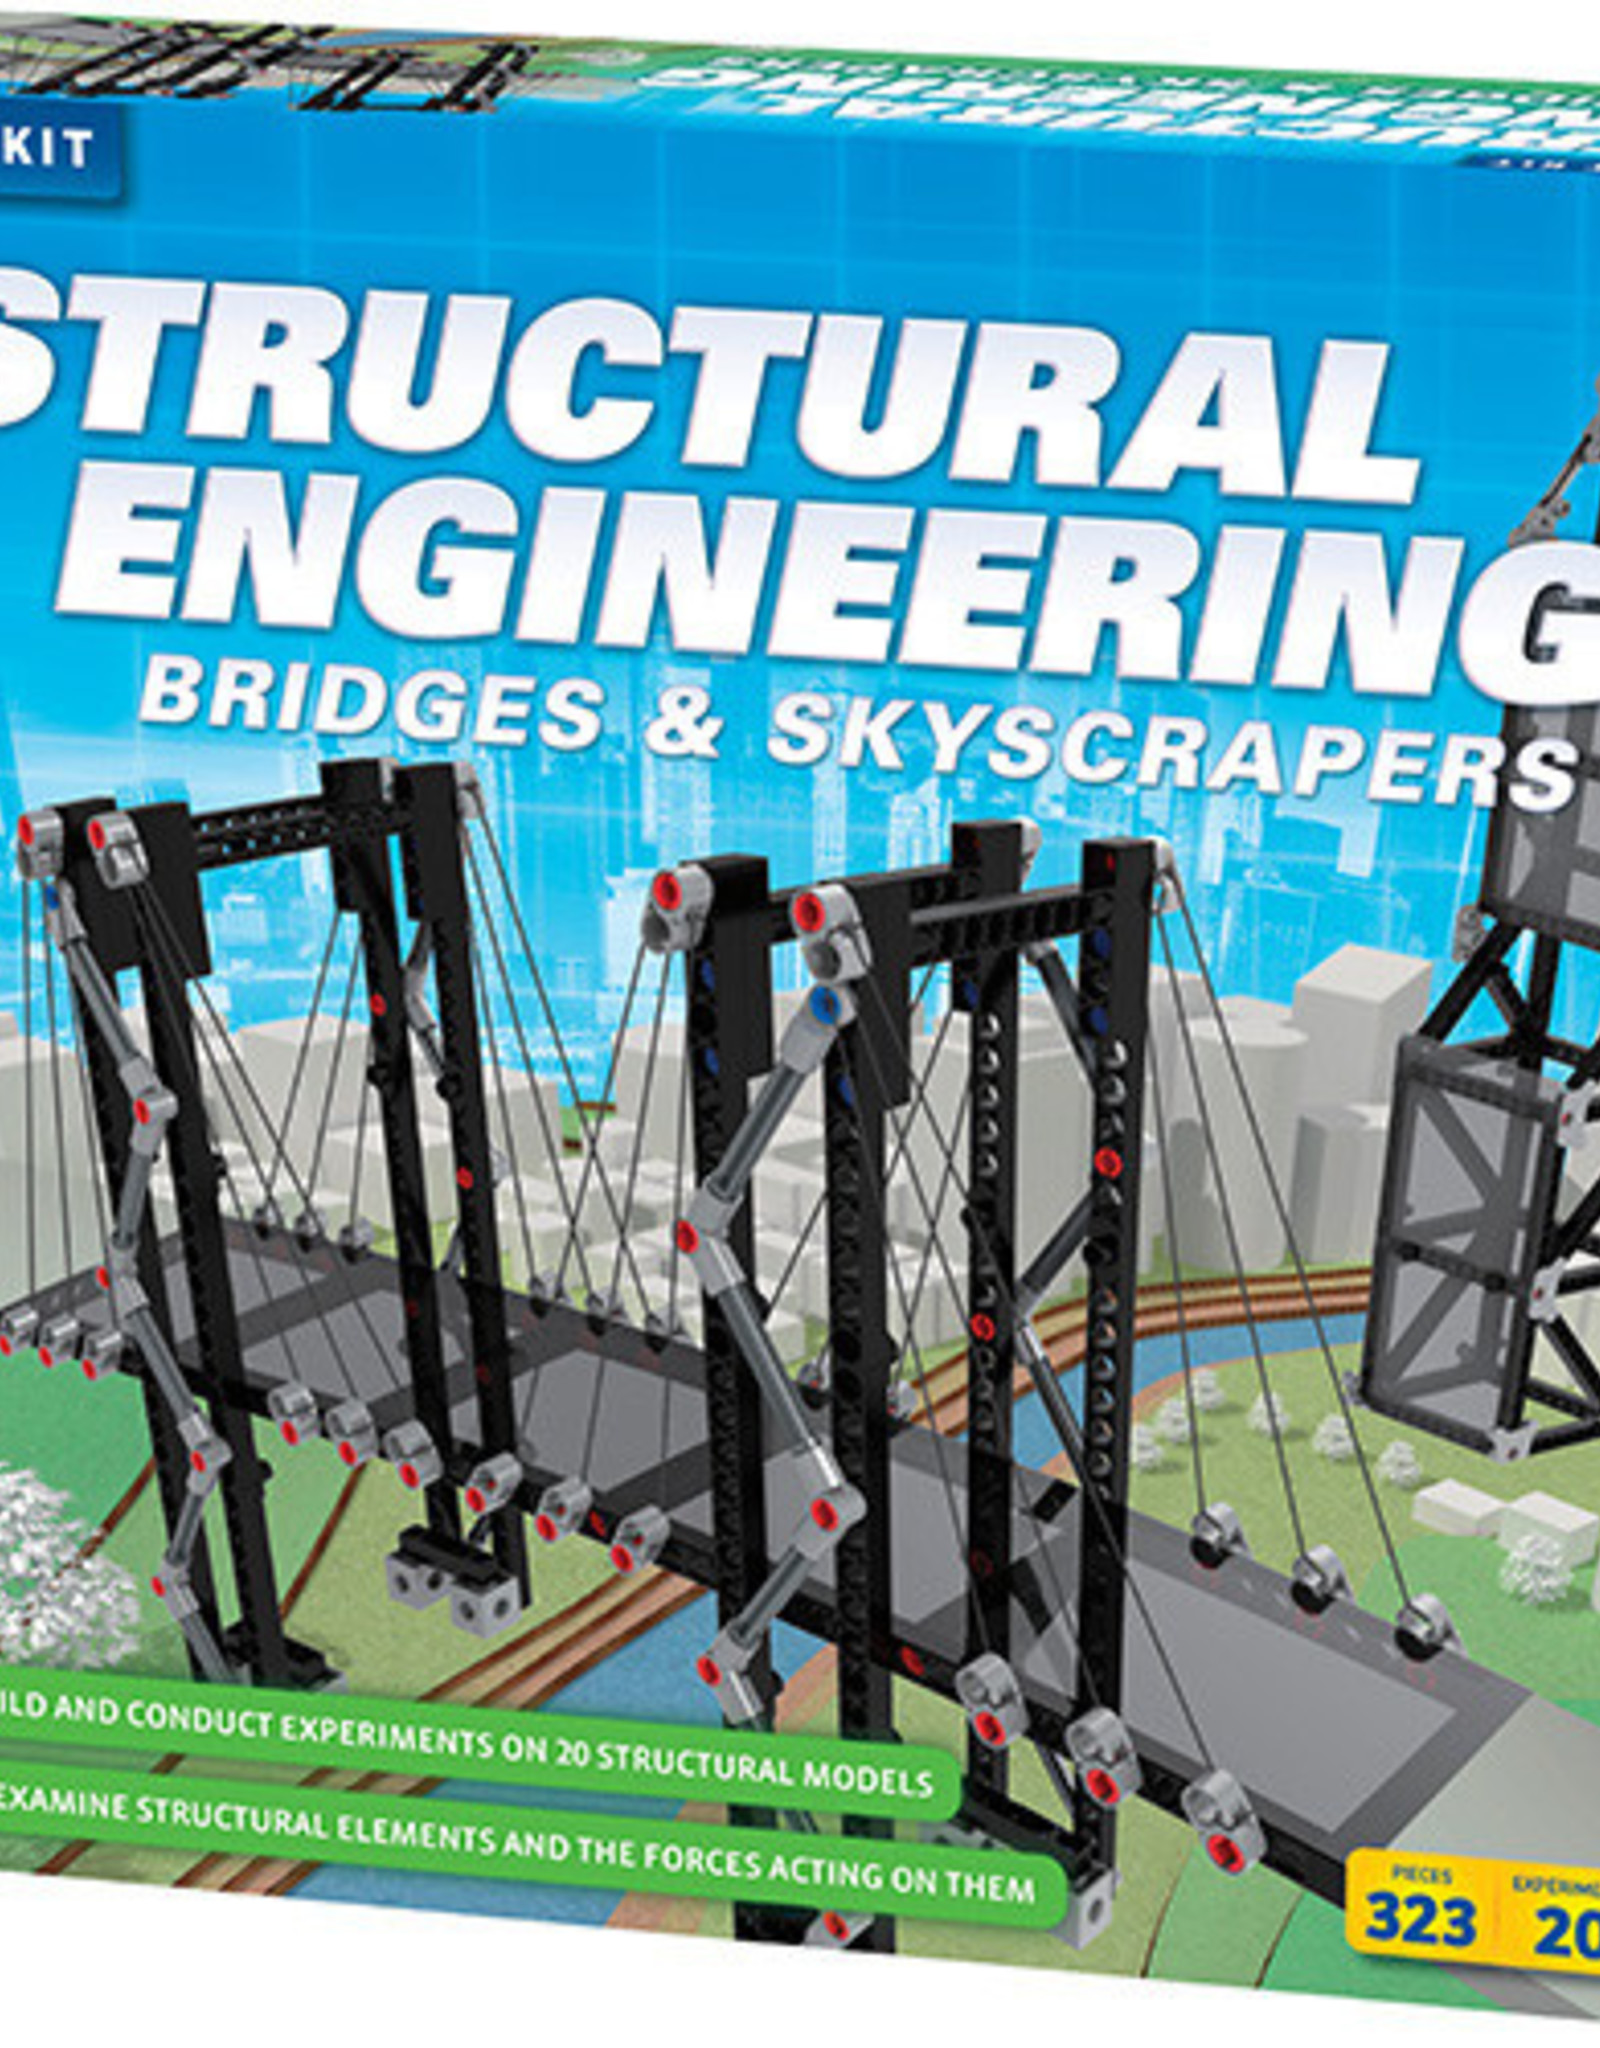 STEM EXPERIMENT KIT STRUCTURAL ENGINEER